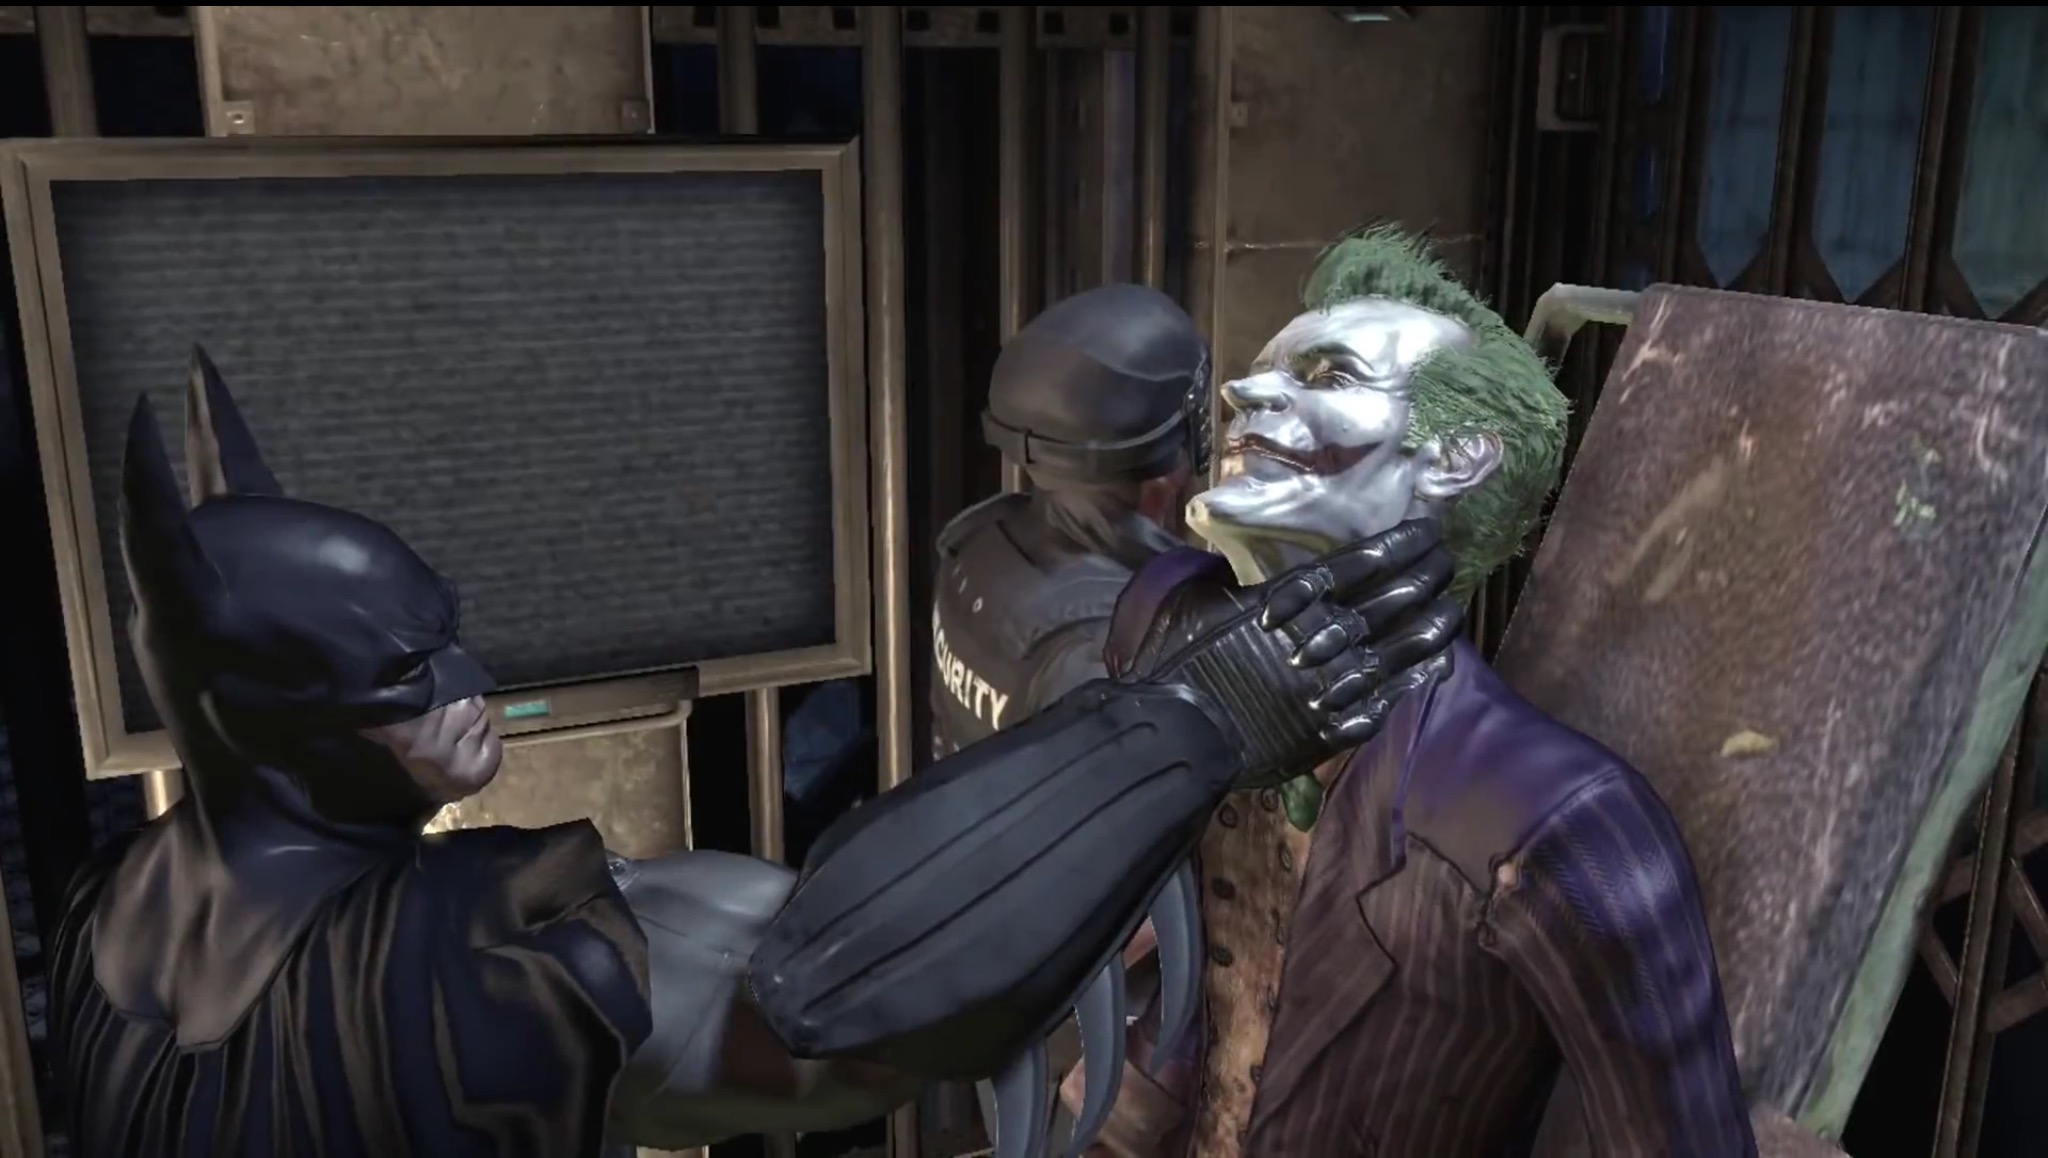 http://cdn1.gamepur.com/images/feature/batman_return_to_arkham/comparison-screenshot-1.jpg